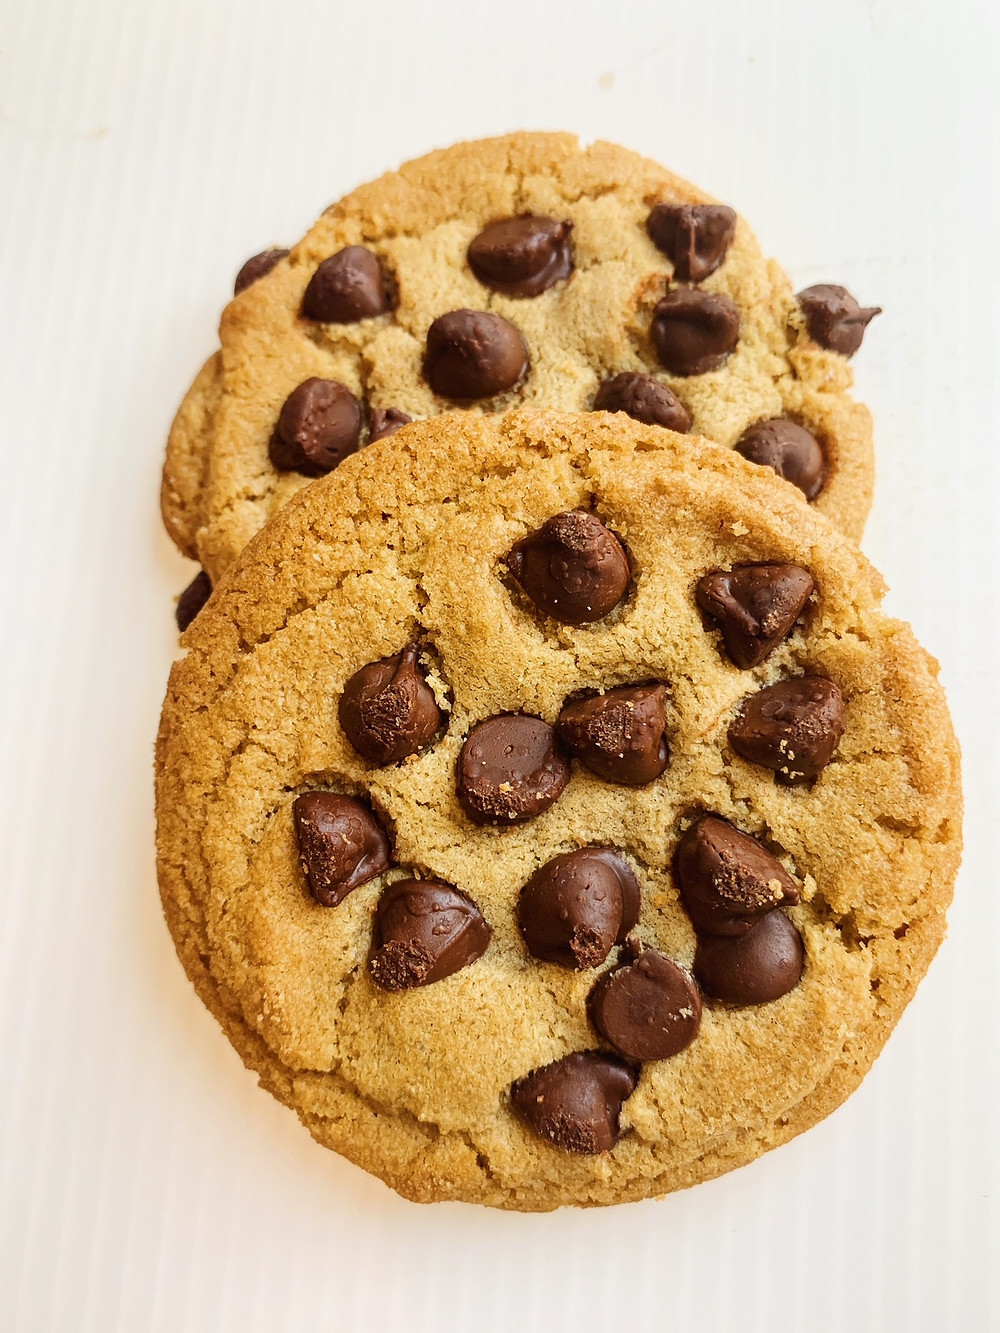 Chocolate Chip Cookies from Memorial Bakery